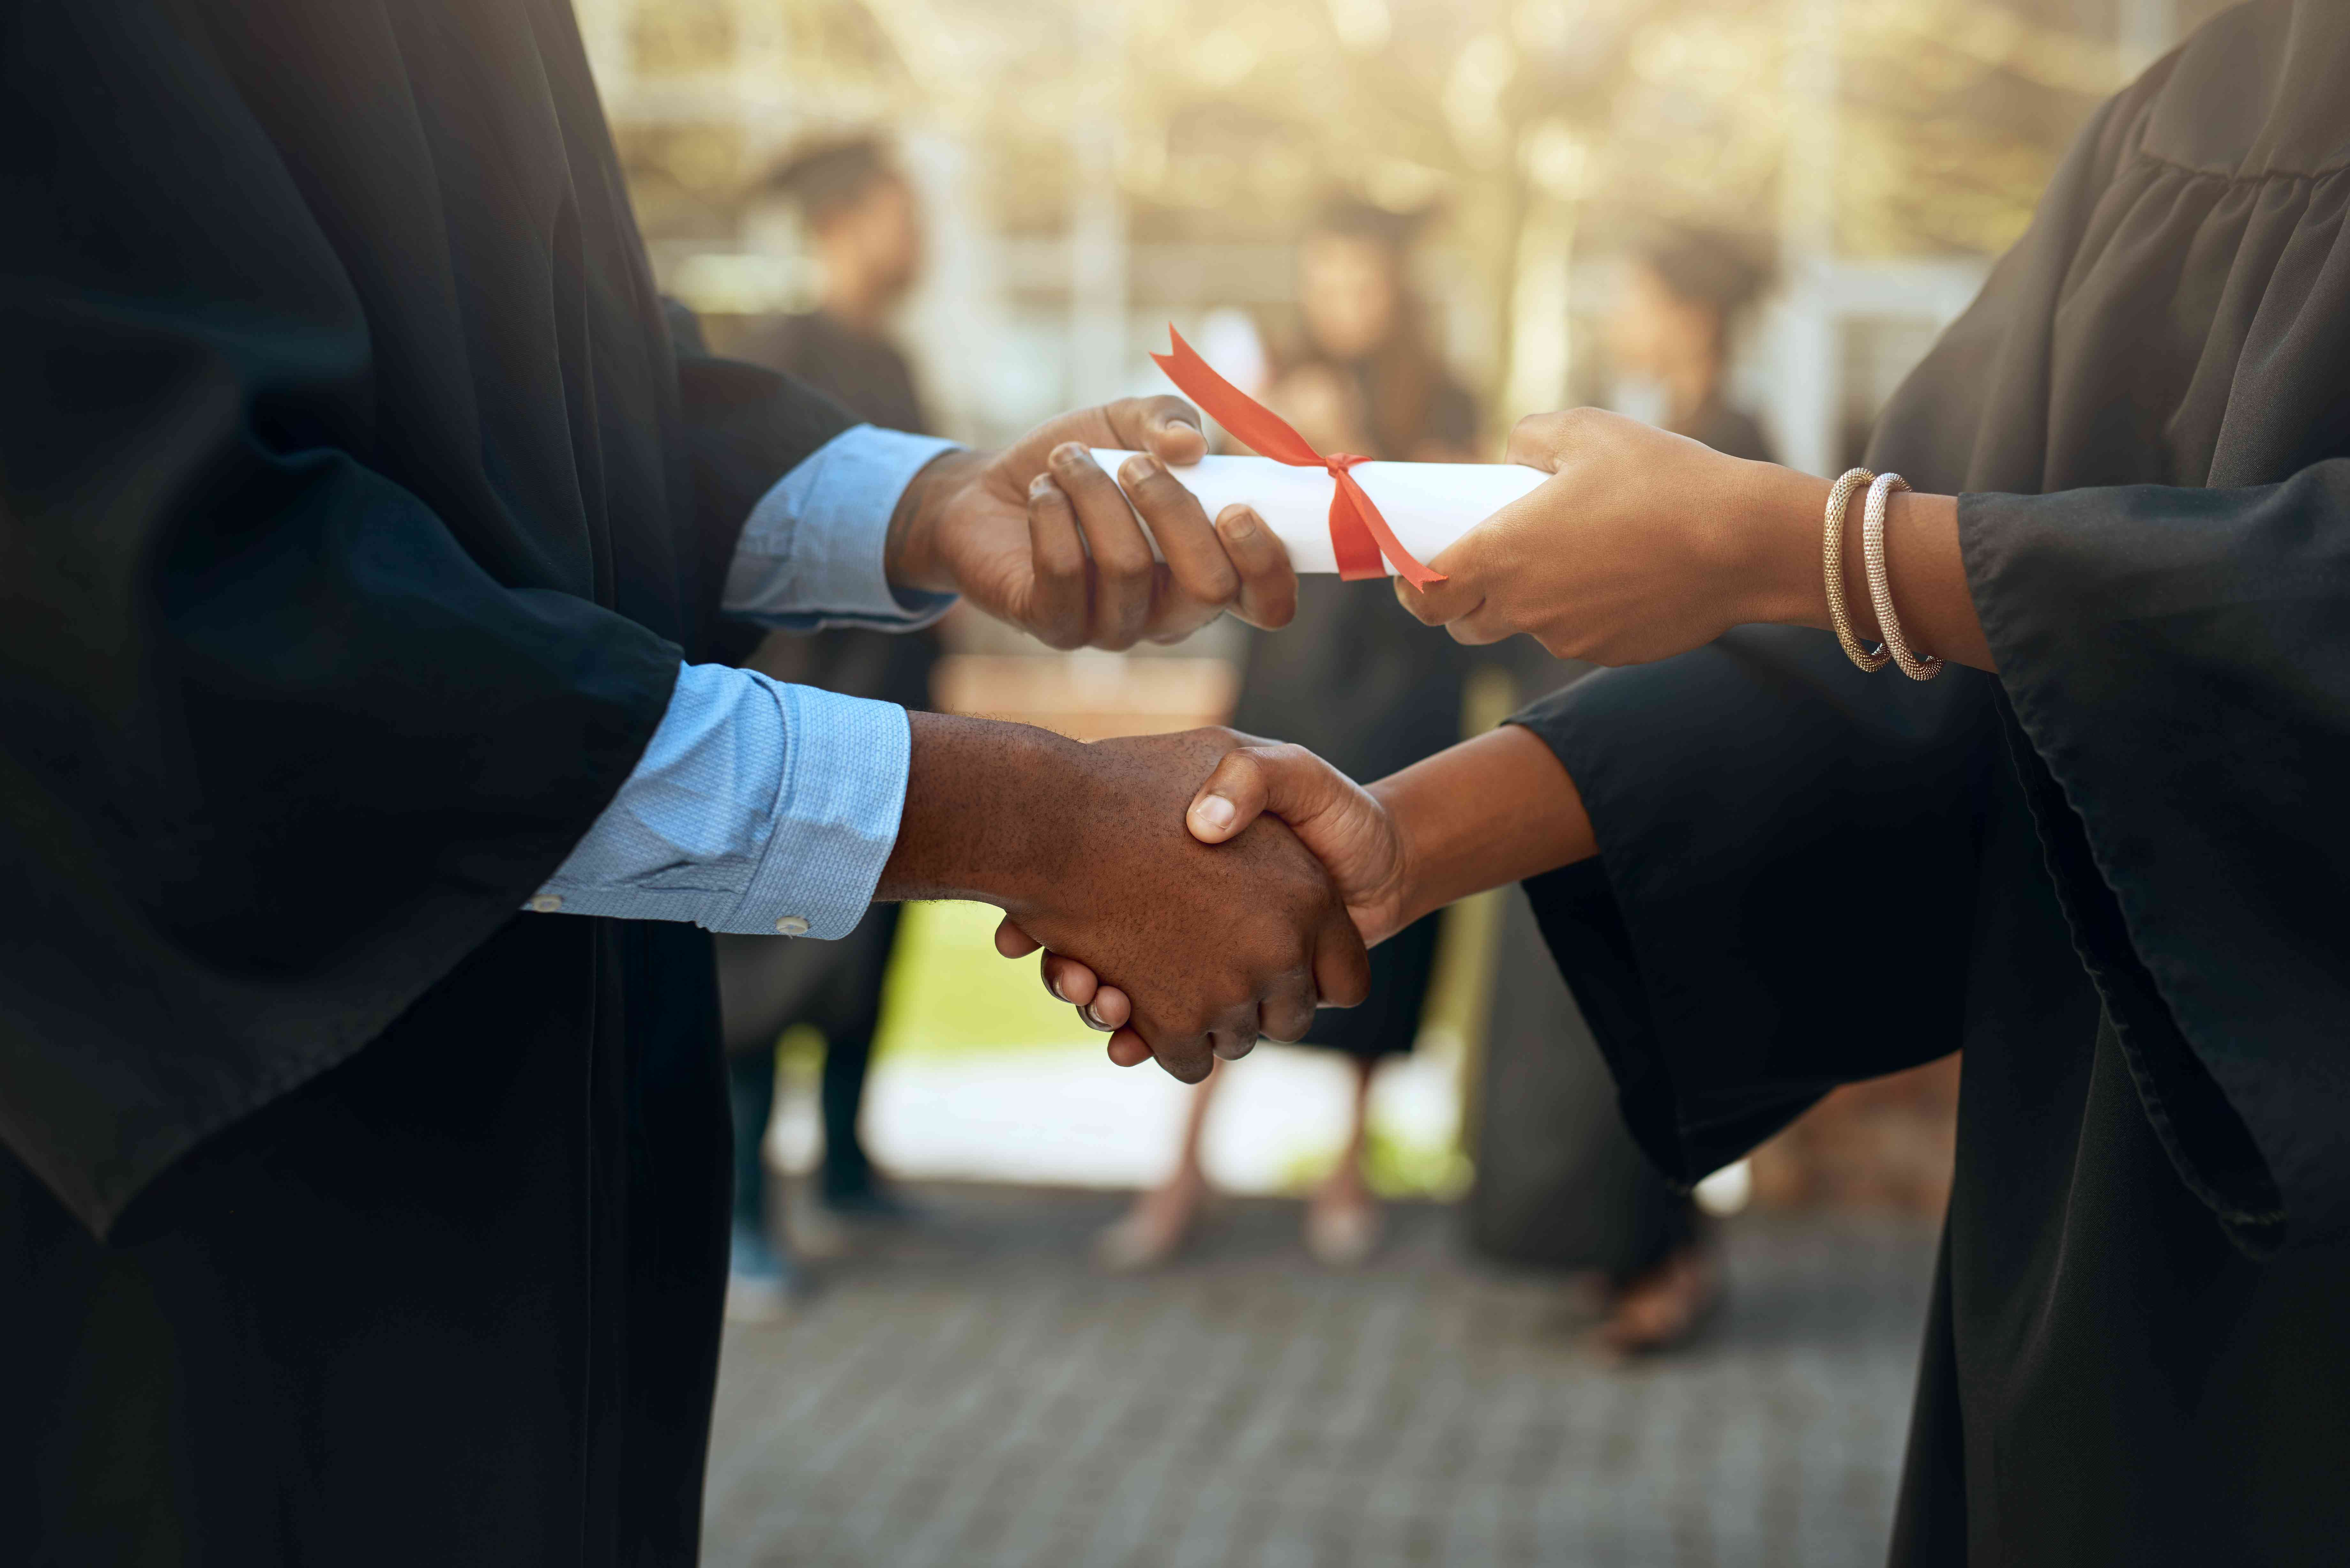 A graduate receiving a degree diploma and shaking hands